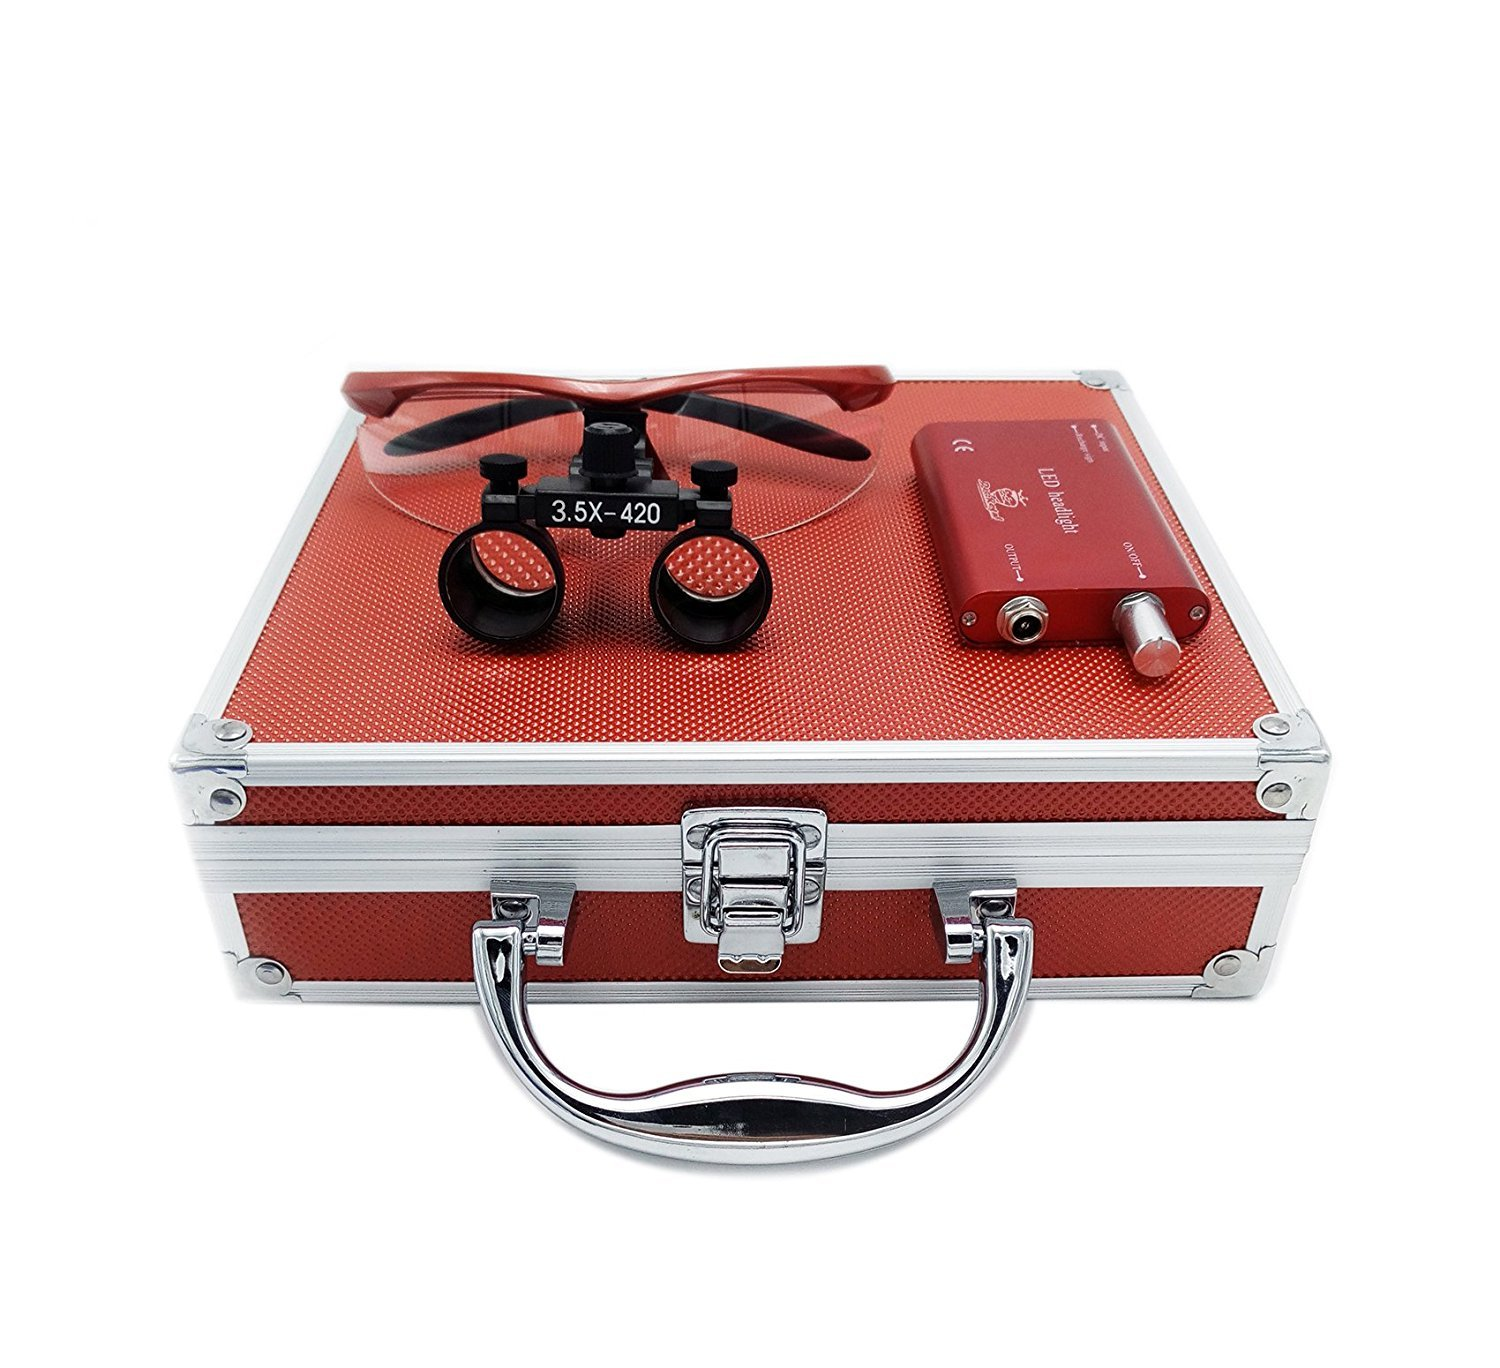 Ocean Aquarius NEW Surgical Binocular Loupes 3.5x420MM Optical Glass with LED Head Light Lamp+Red Aluminum Box